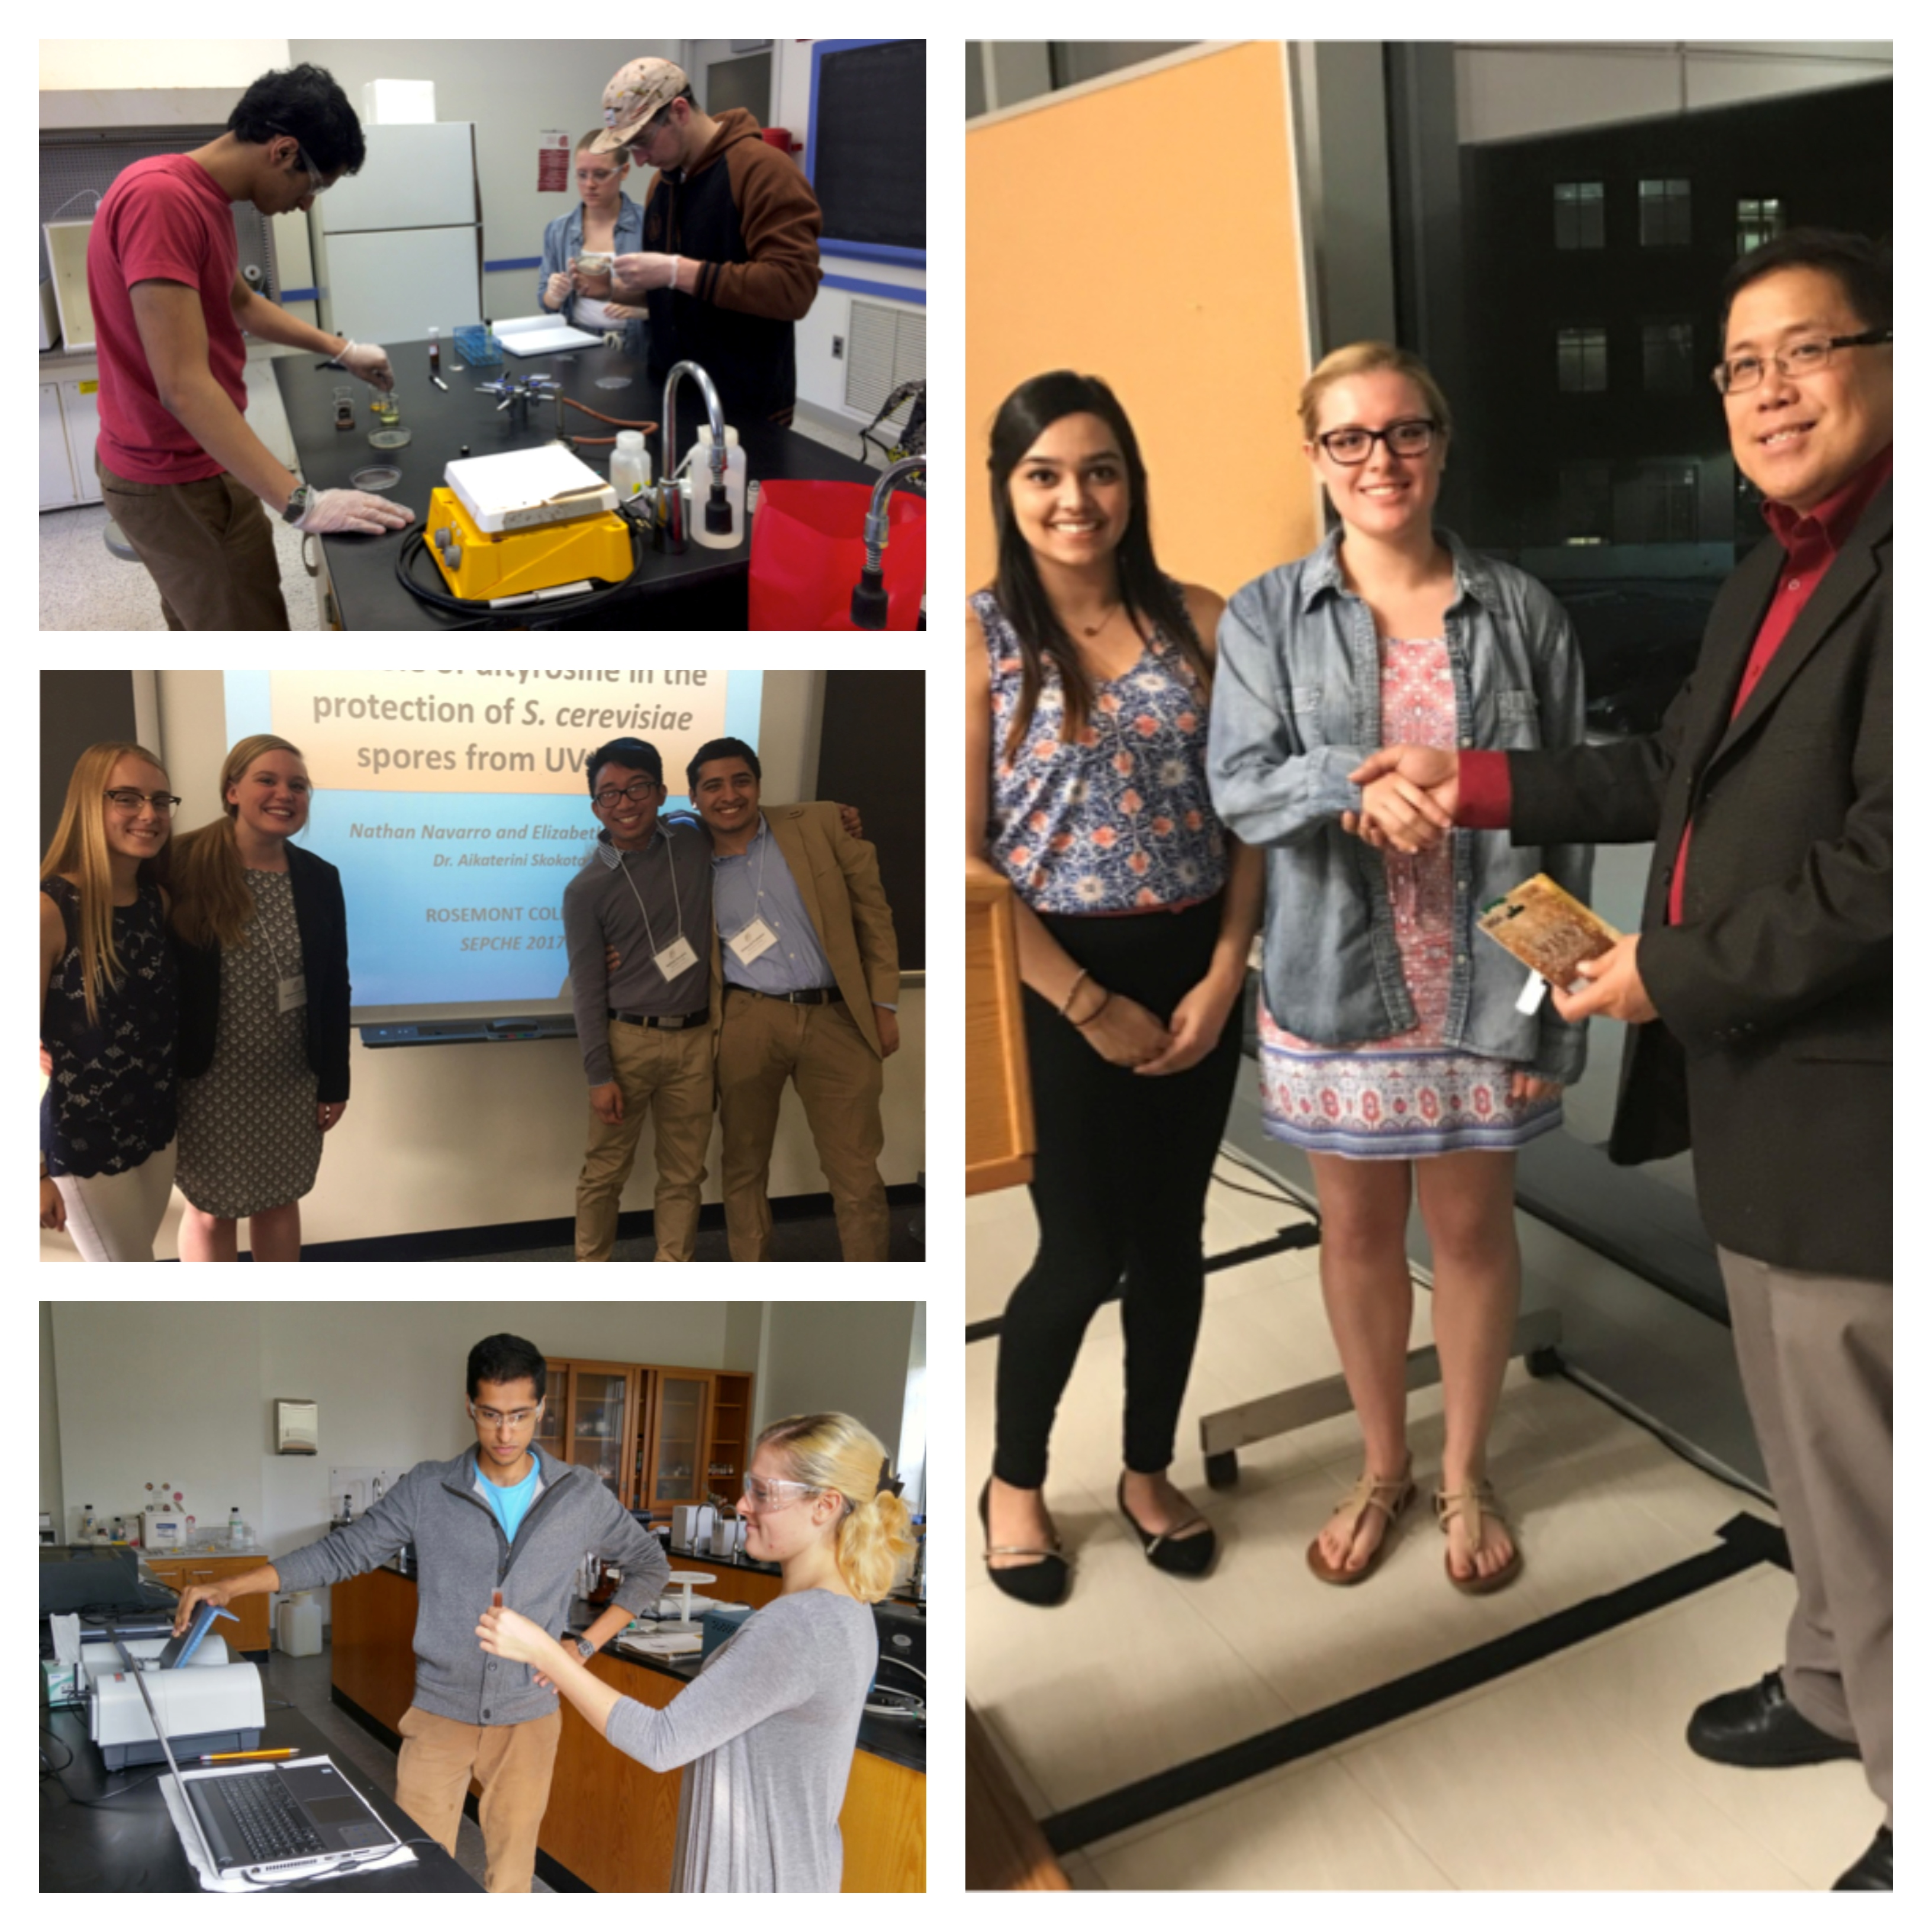 Collage of Rosemont chemistry students doing research and winning awards.